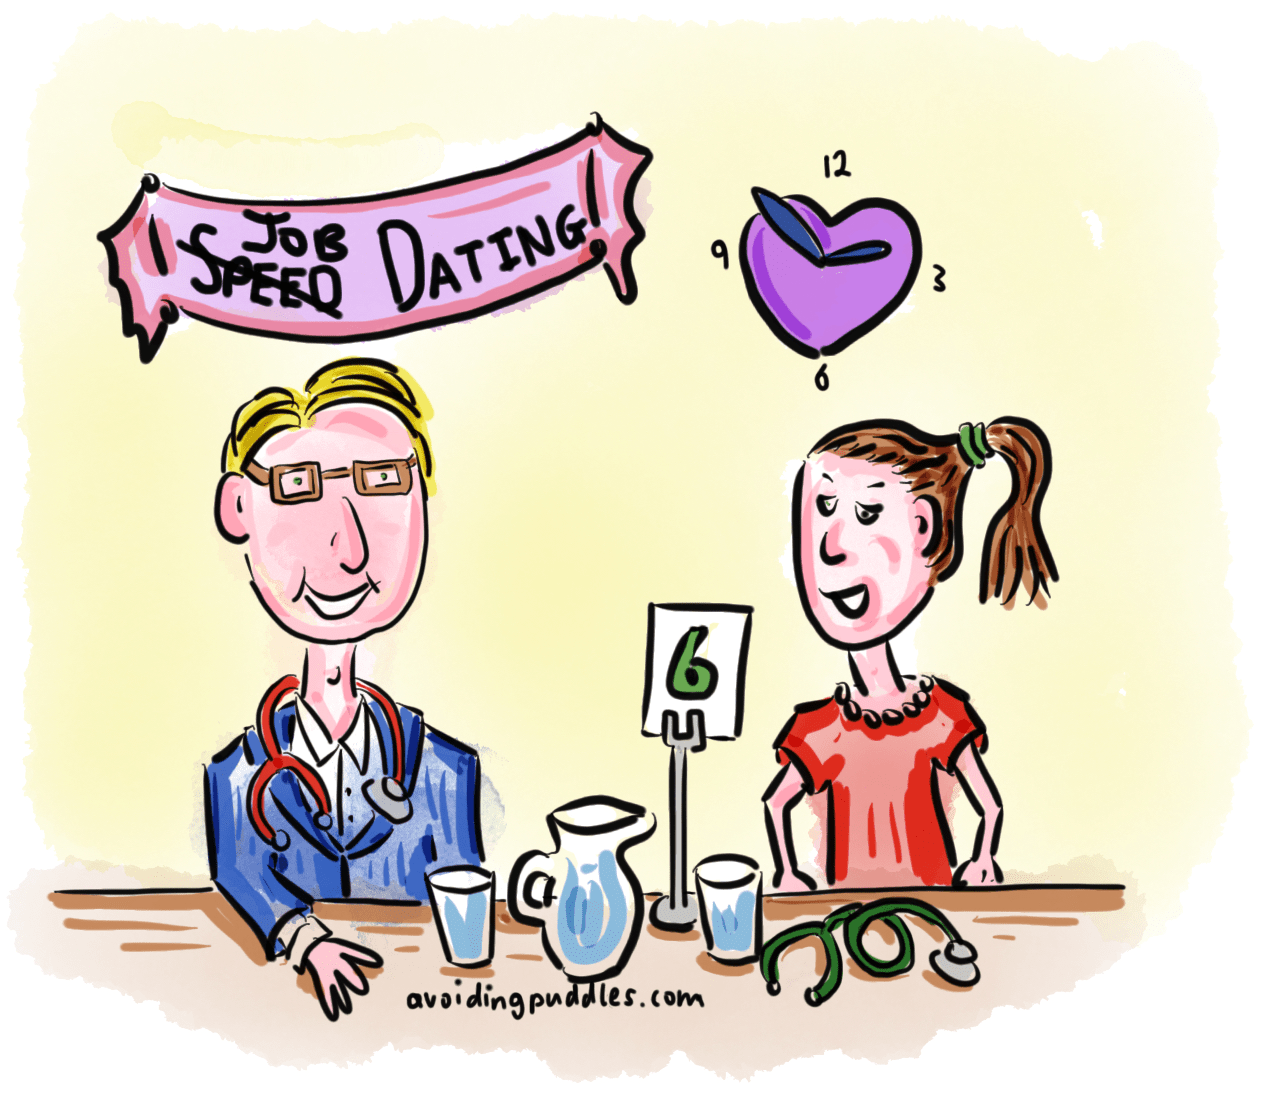 Speed dating mainz